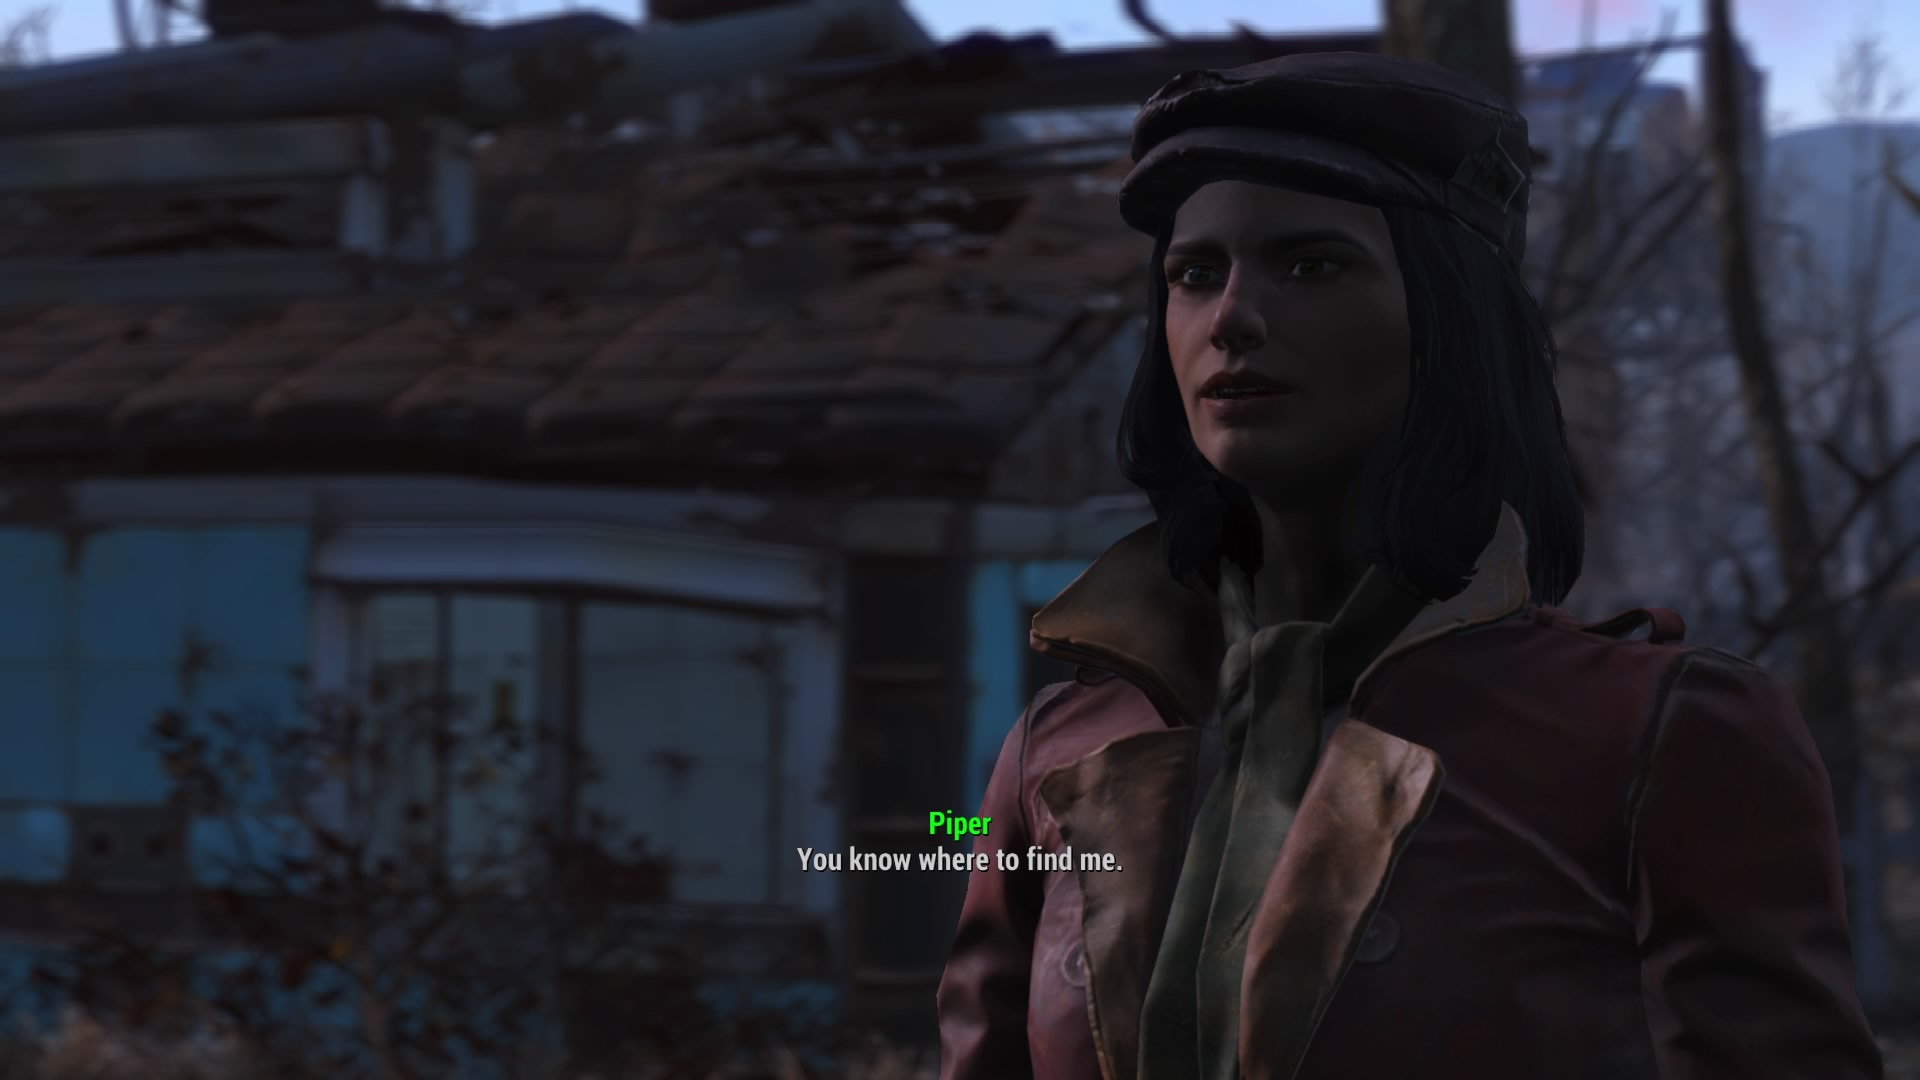 Fallout 4: how to romance Piper, Preston and other